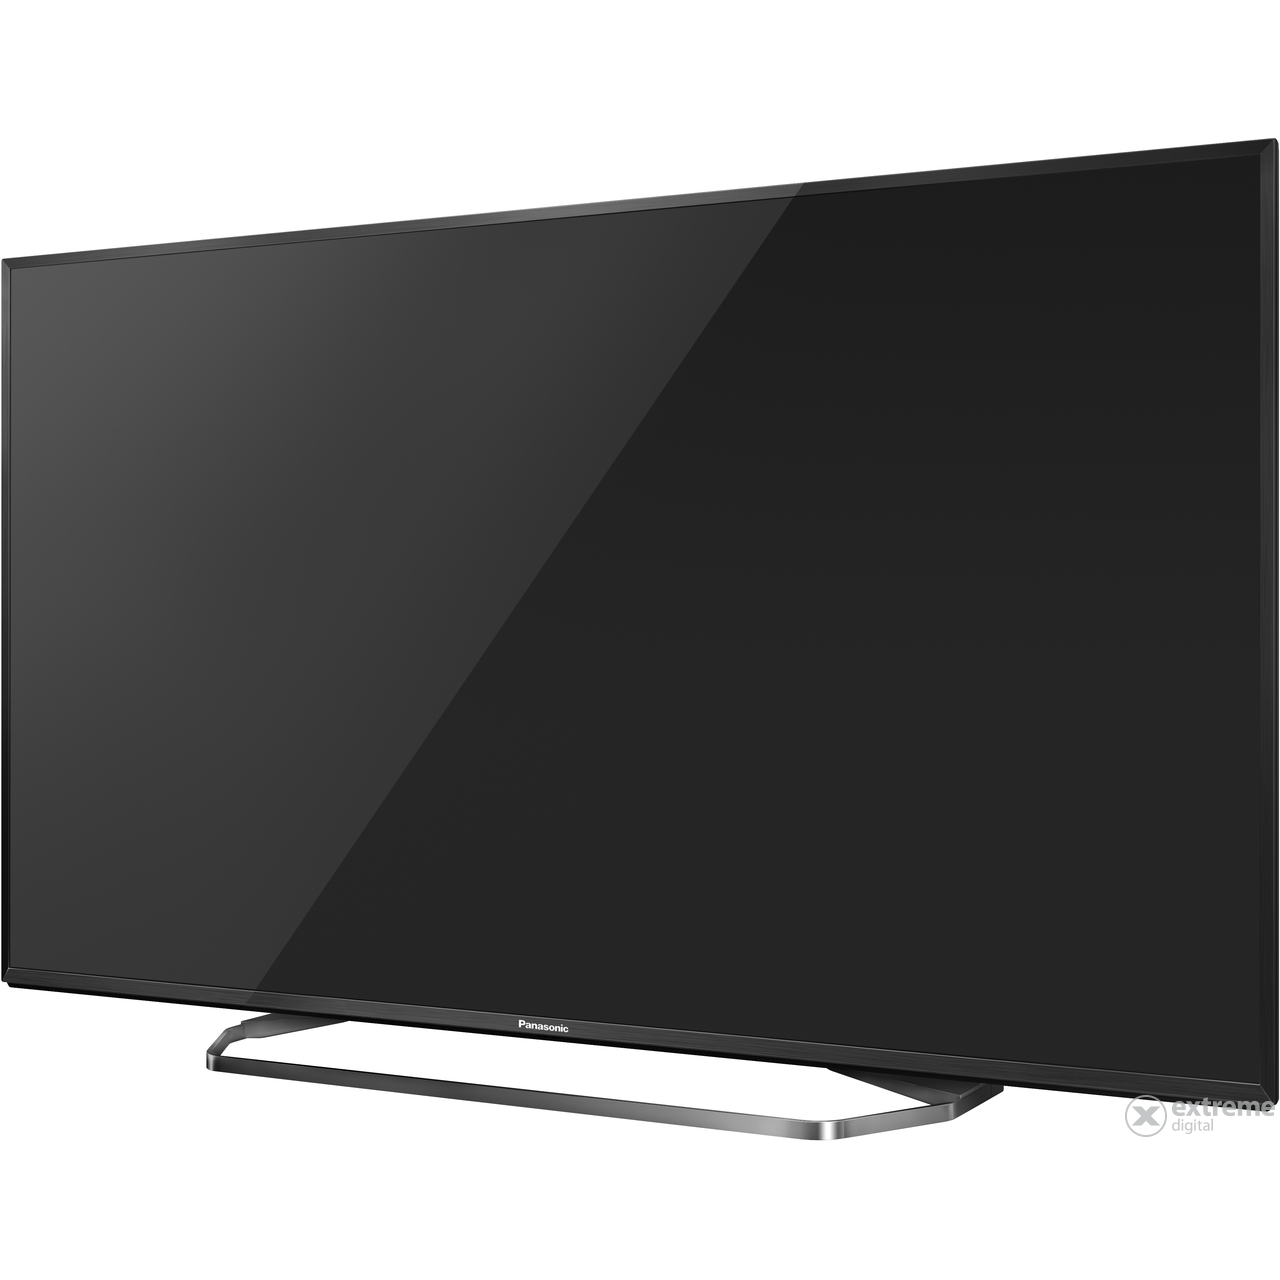 panasonic-tx-49cx750e-uhd-3d-smart-led-televizio_5183959e.jpg